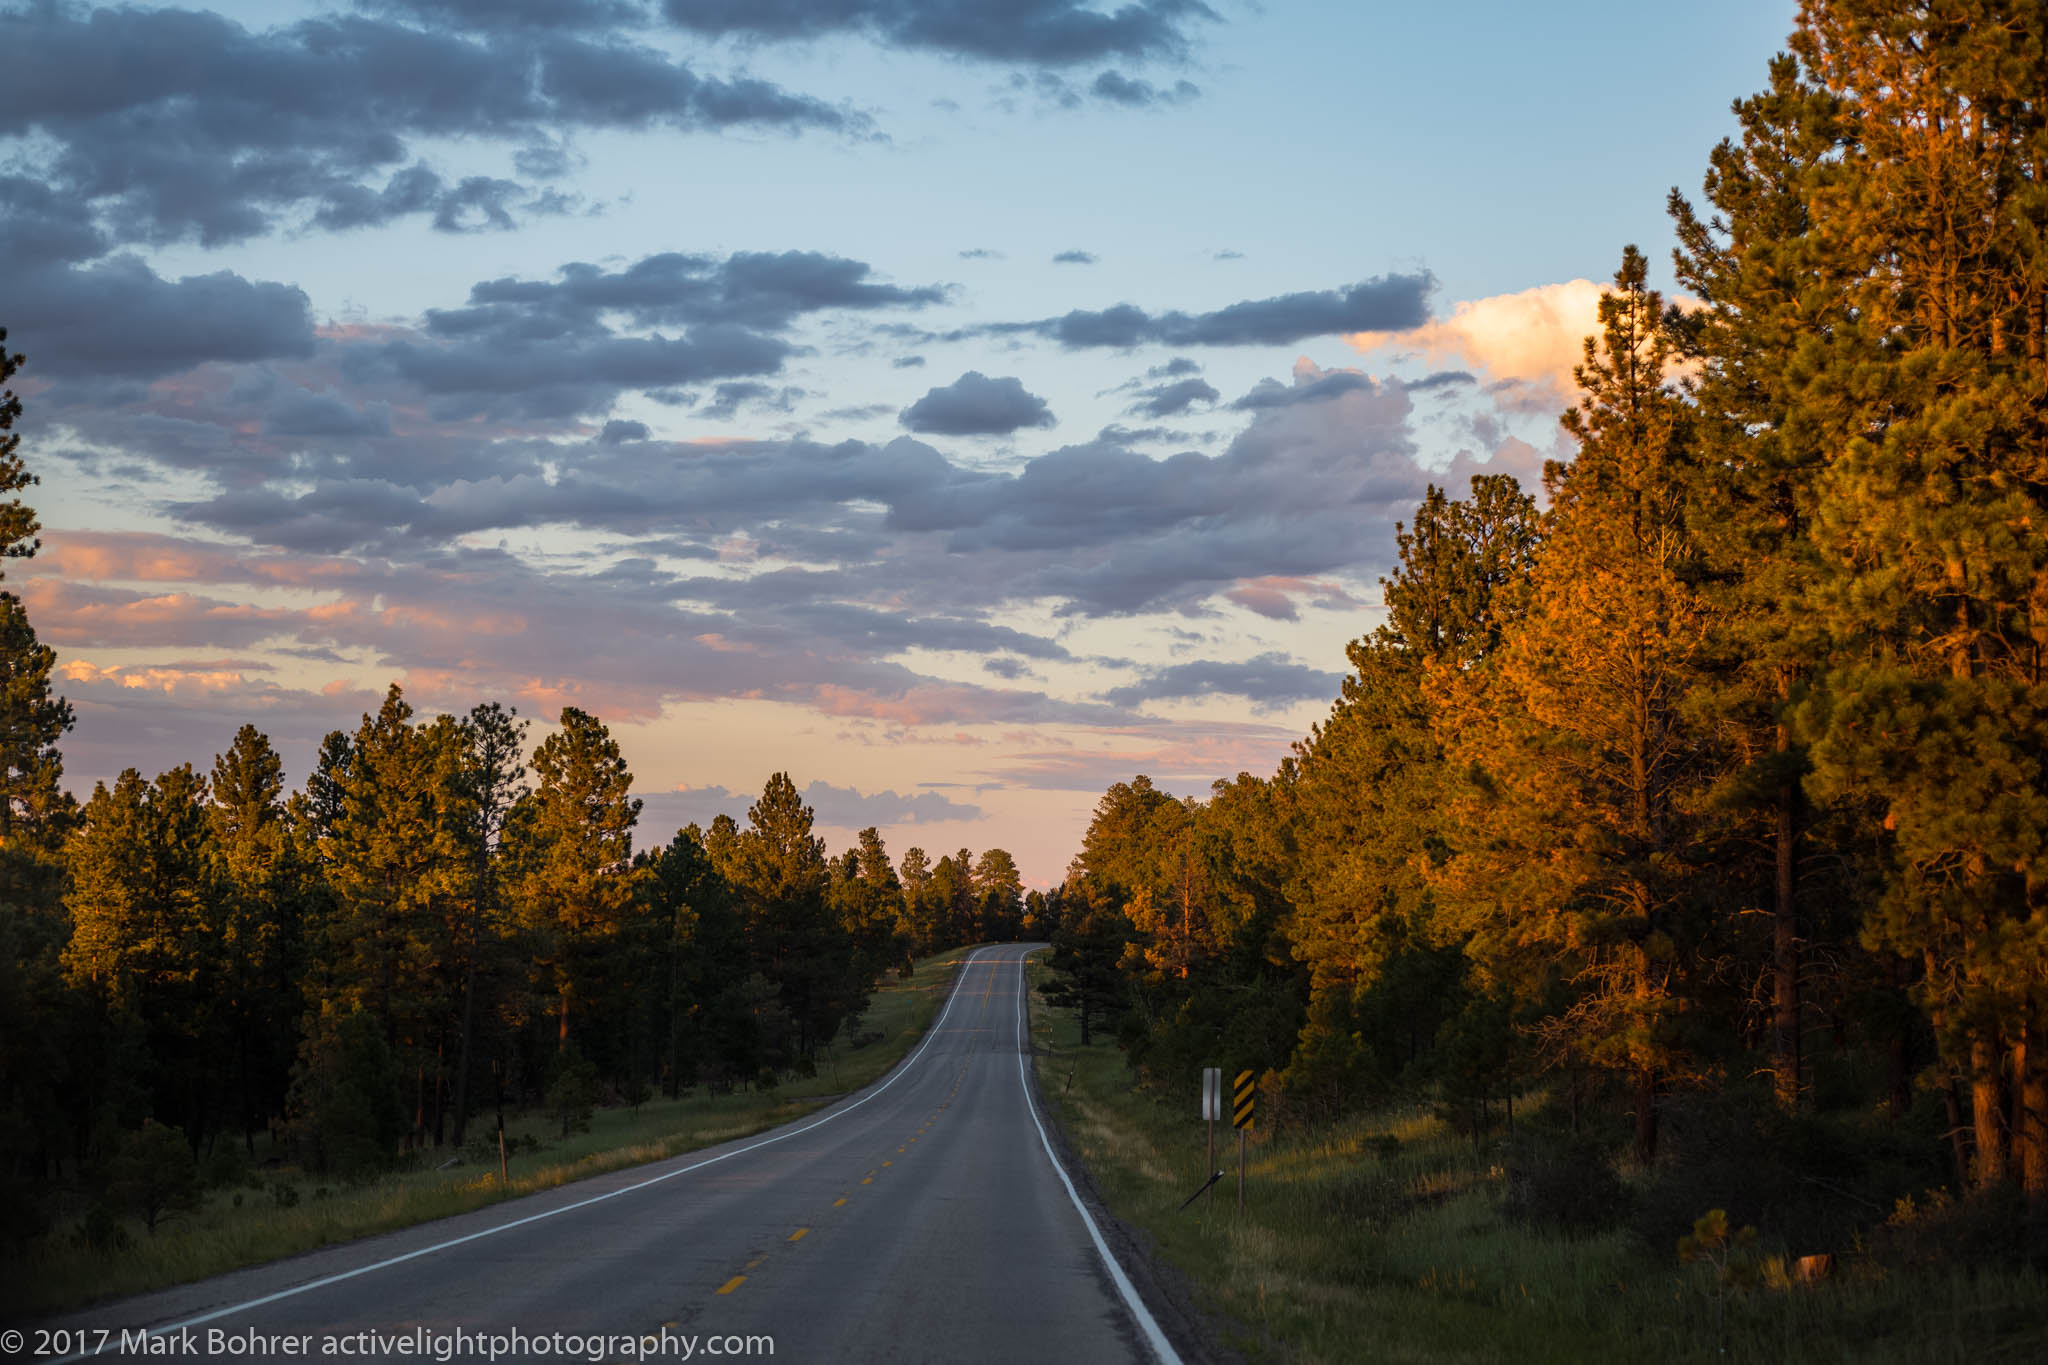 Departing sunset on the road from Red Canyon, Flaming Gorge